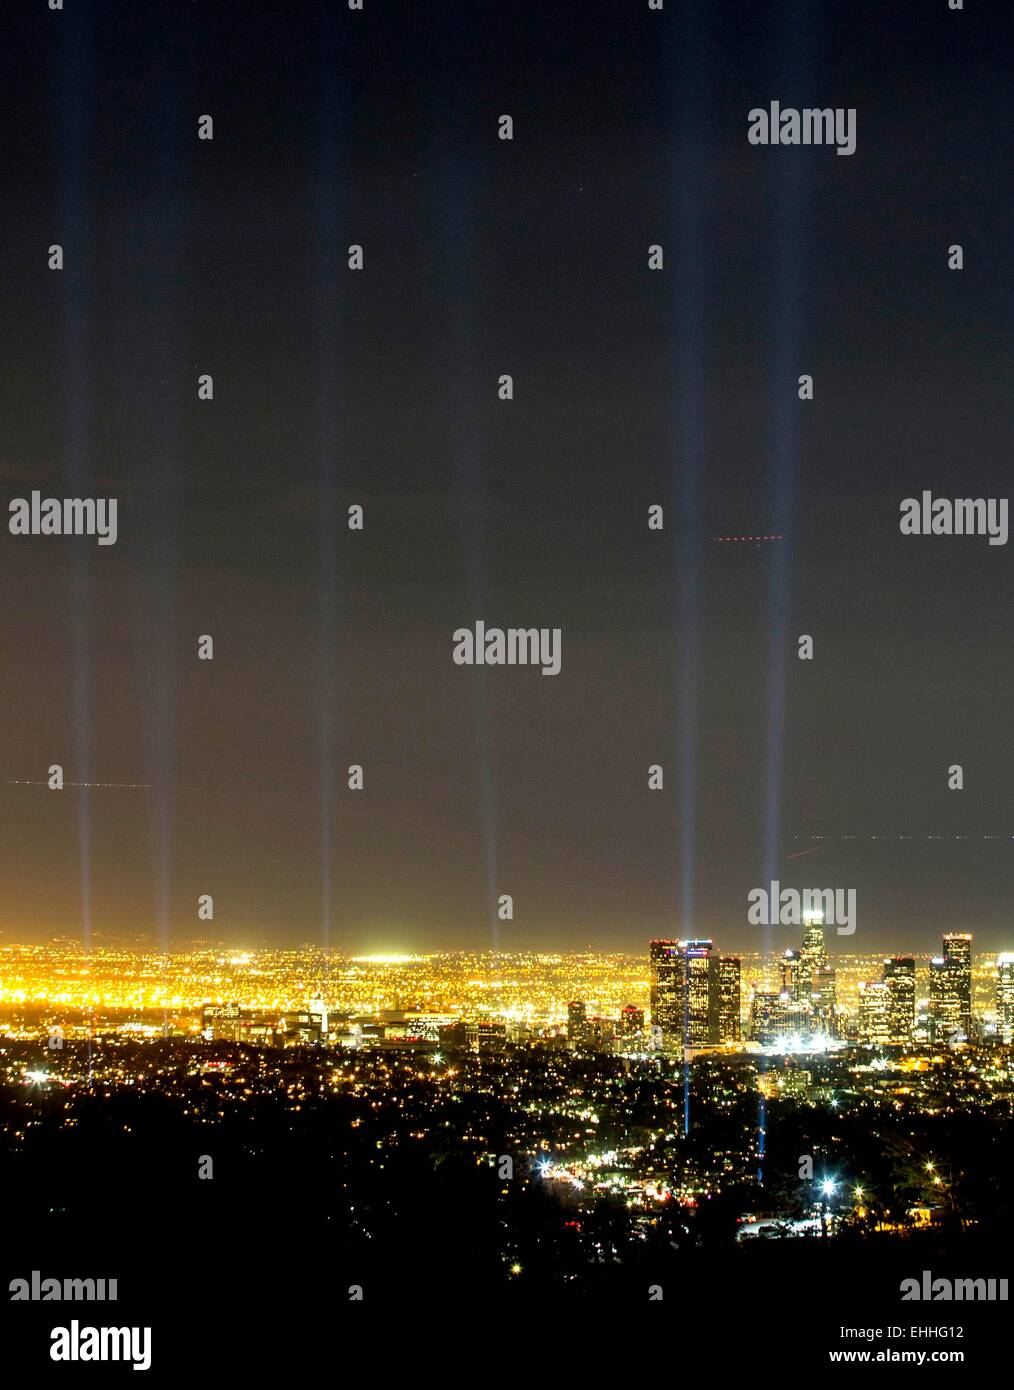 (150314)-- LOS ANGELS, March 14, 2015 (Xinhua) -- The spotlights along the marathon route are seen from the Griffith - Stock Image